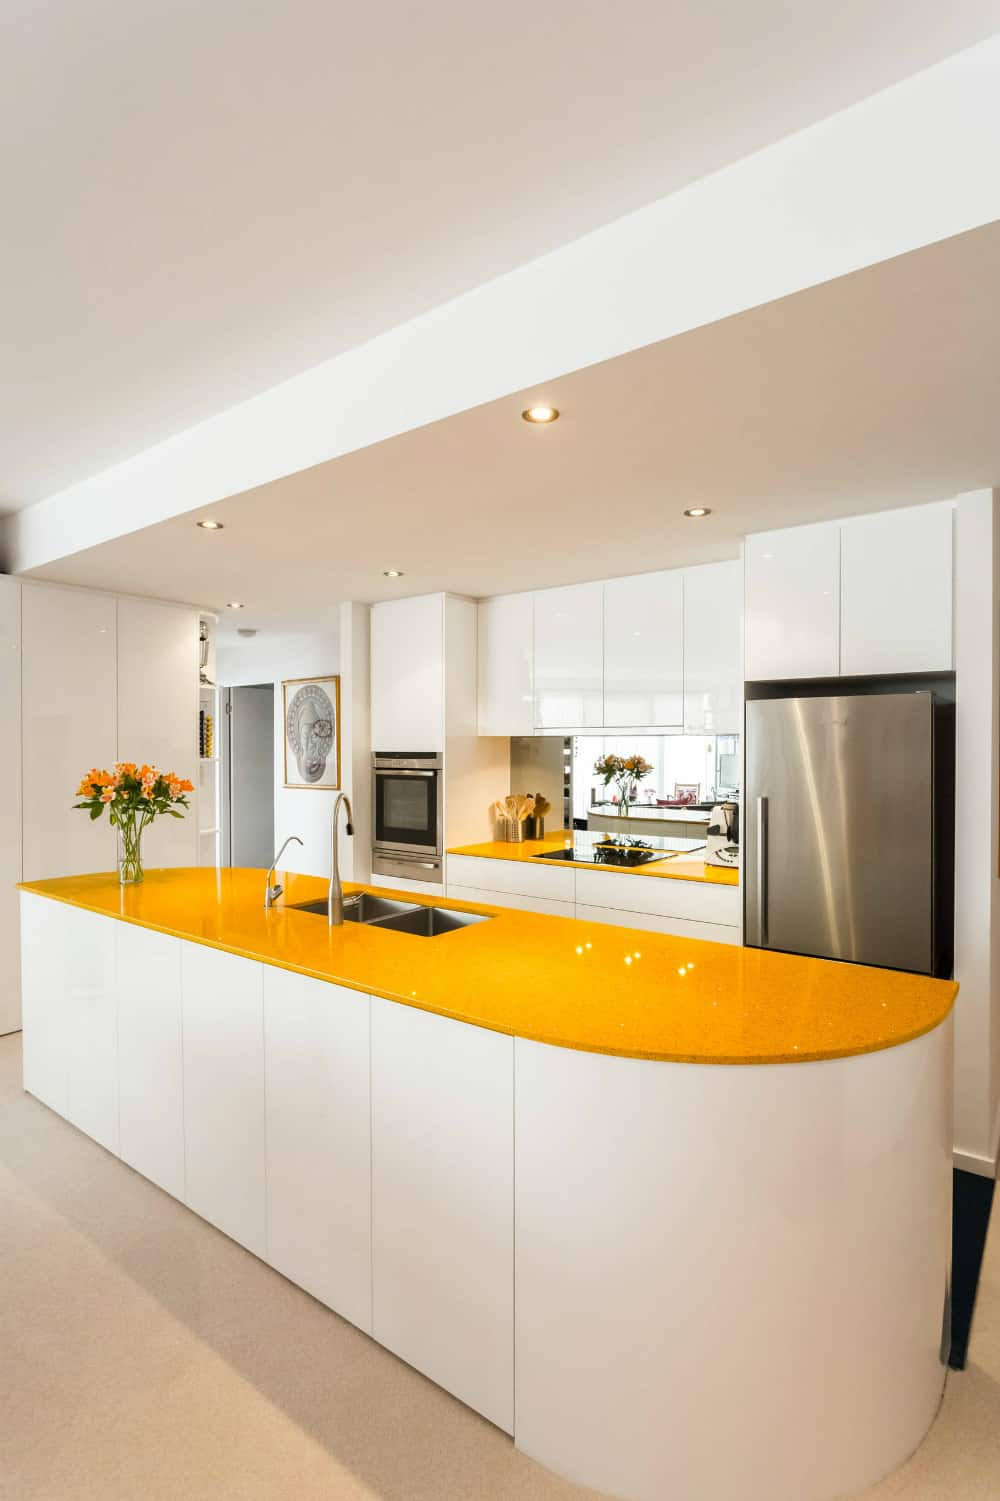 Colourful glass kitchen countertop